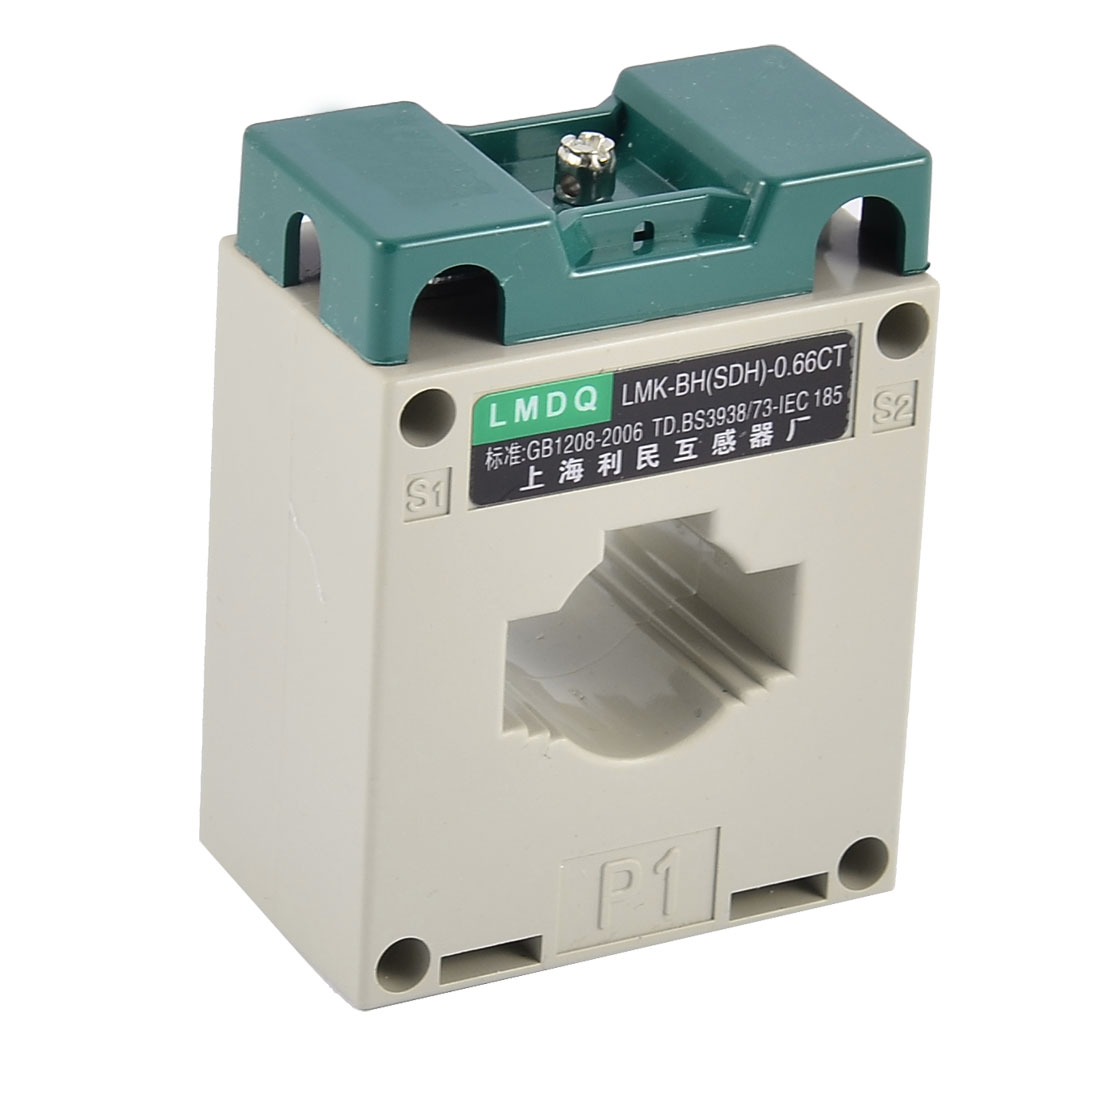 0.66KV 50/60Hz 0.5 Accuracy Class 200A 200/5 Ratio Current Transformer CT